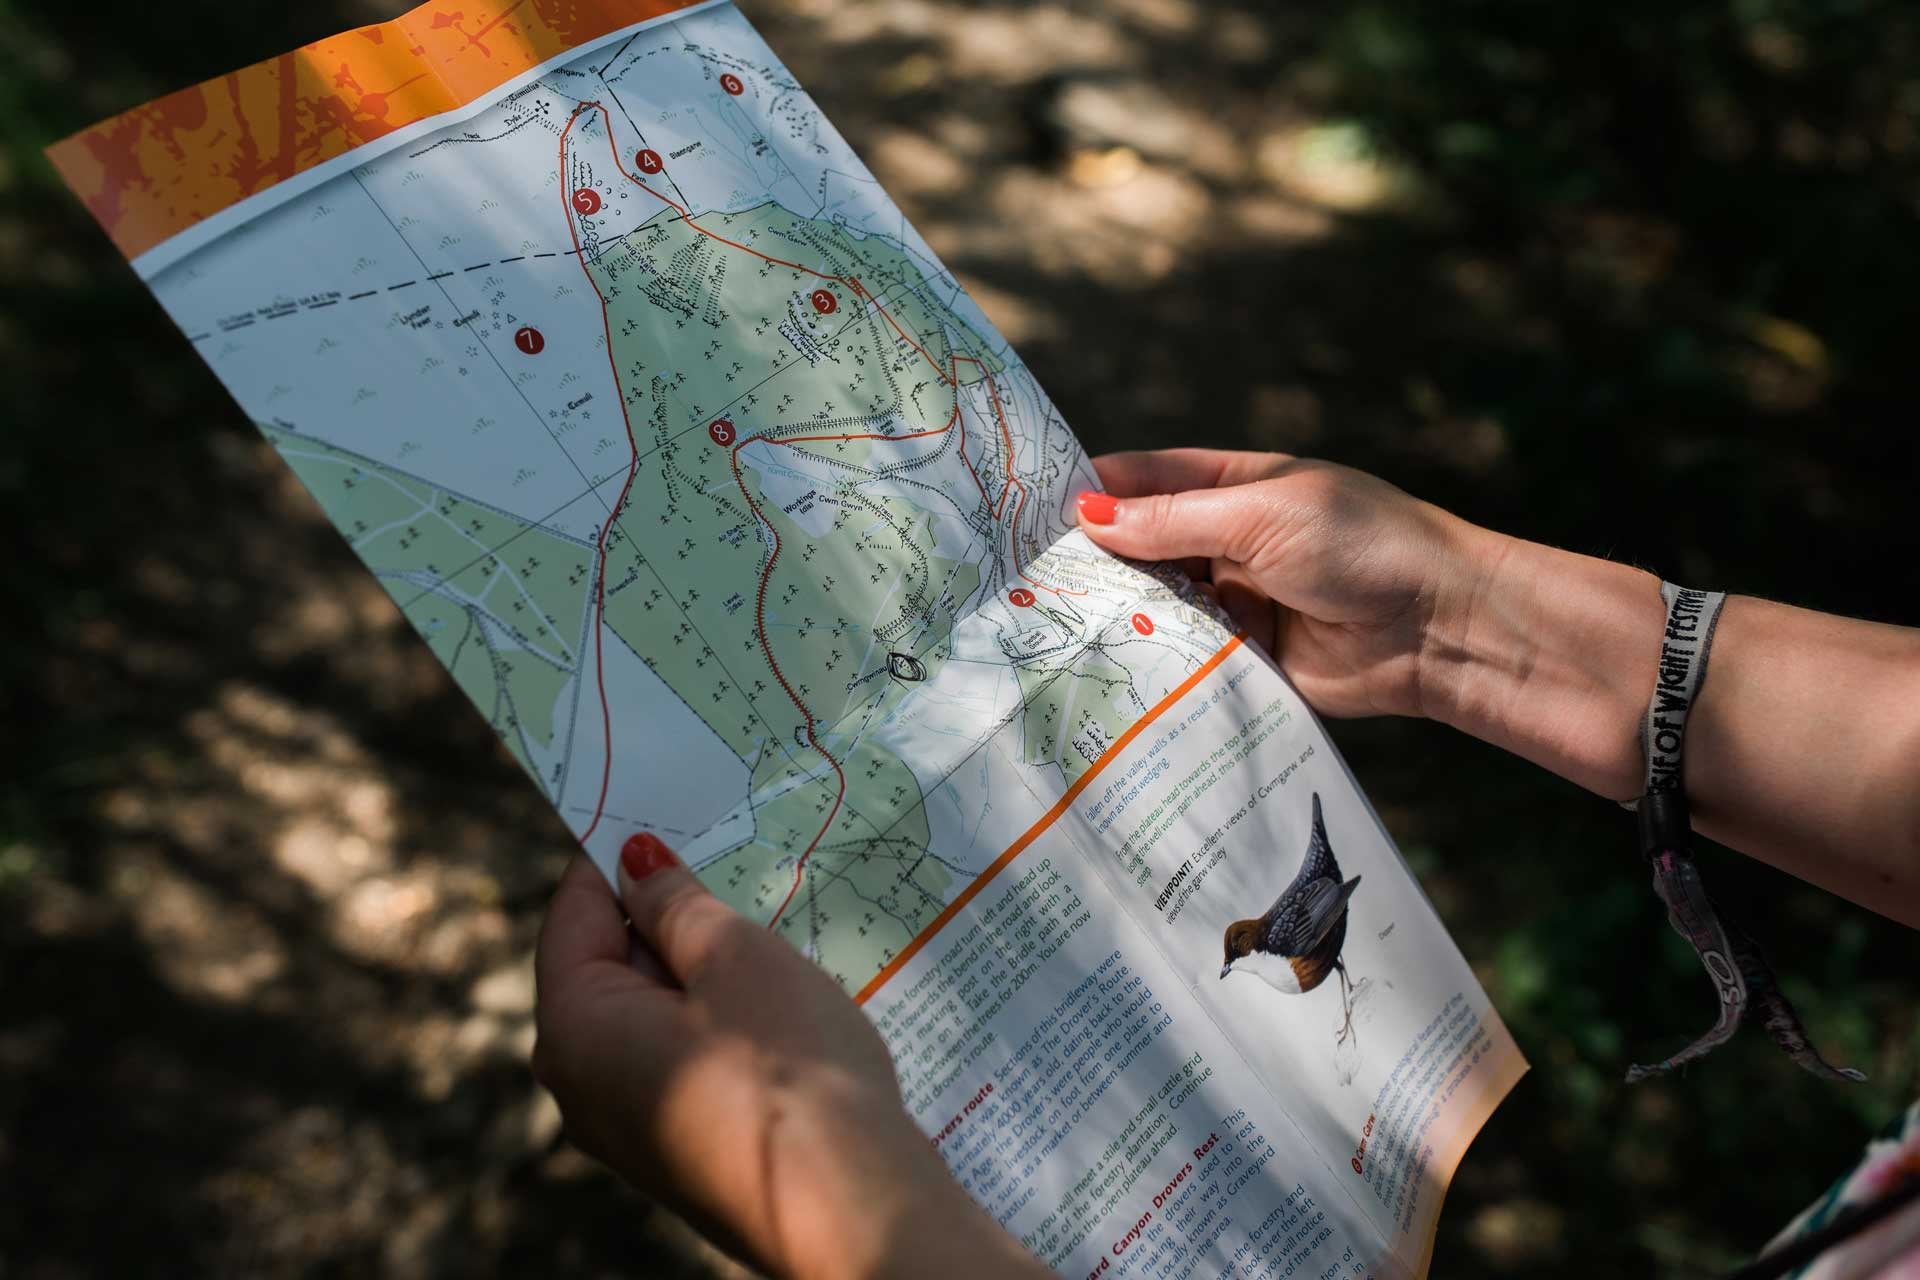 A person holding a walking map in the shaded woodland